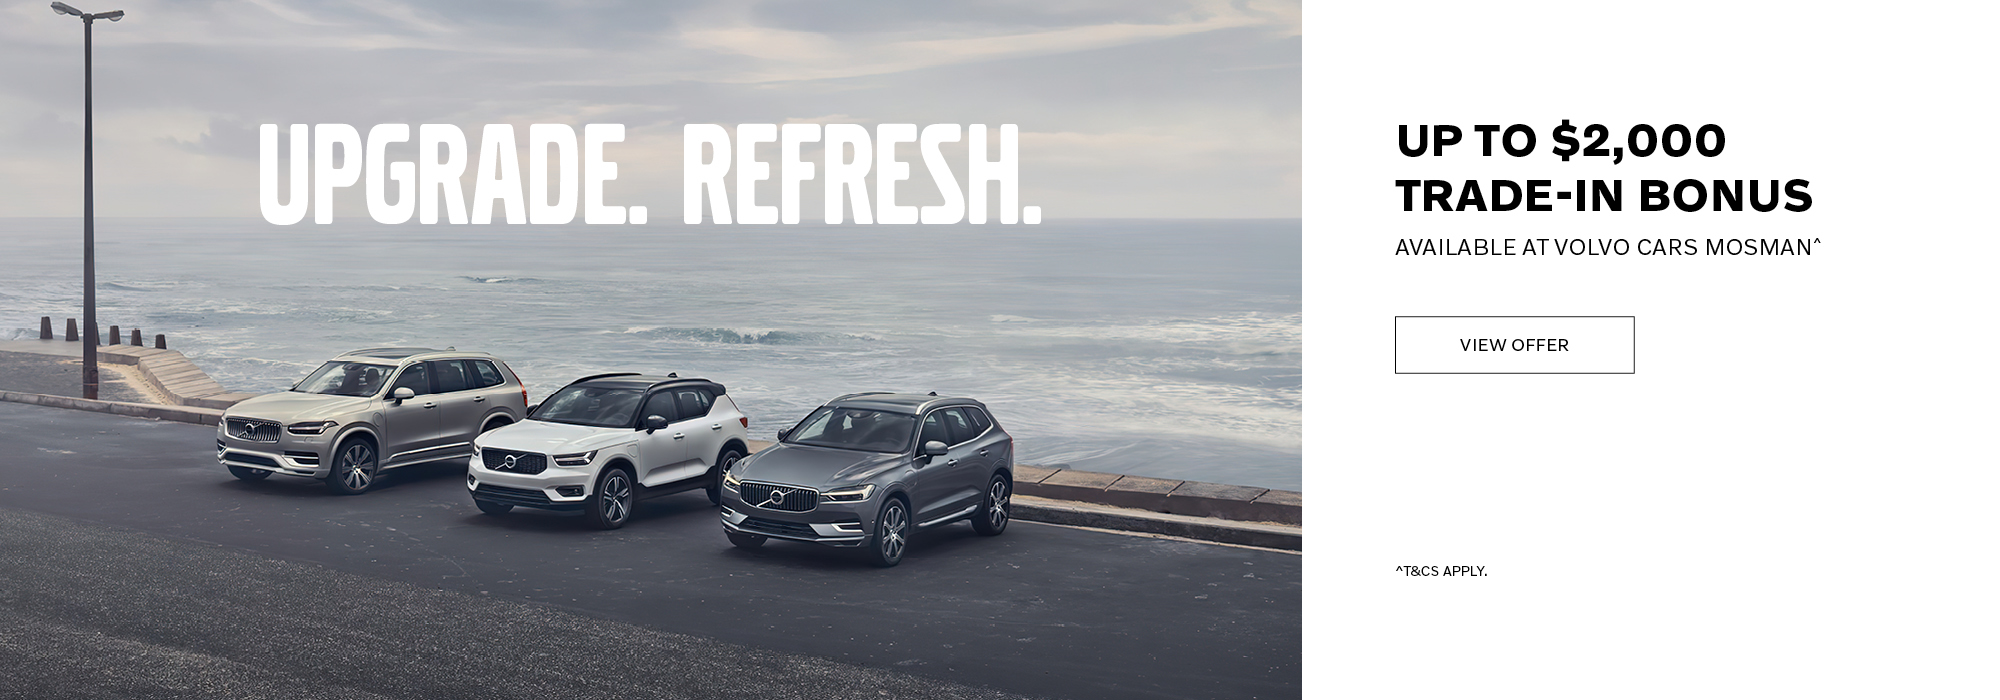 Up to $2000 trade-in bonus at Volvo Cars Mosman